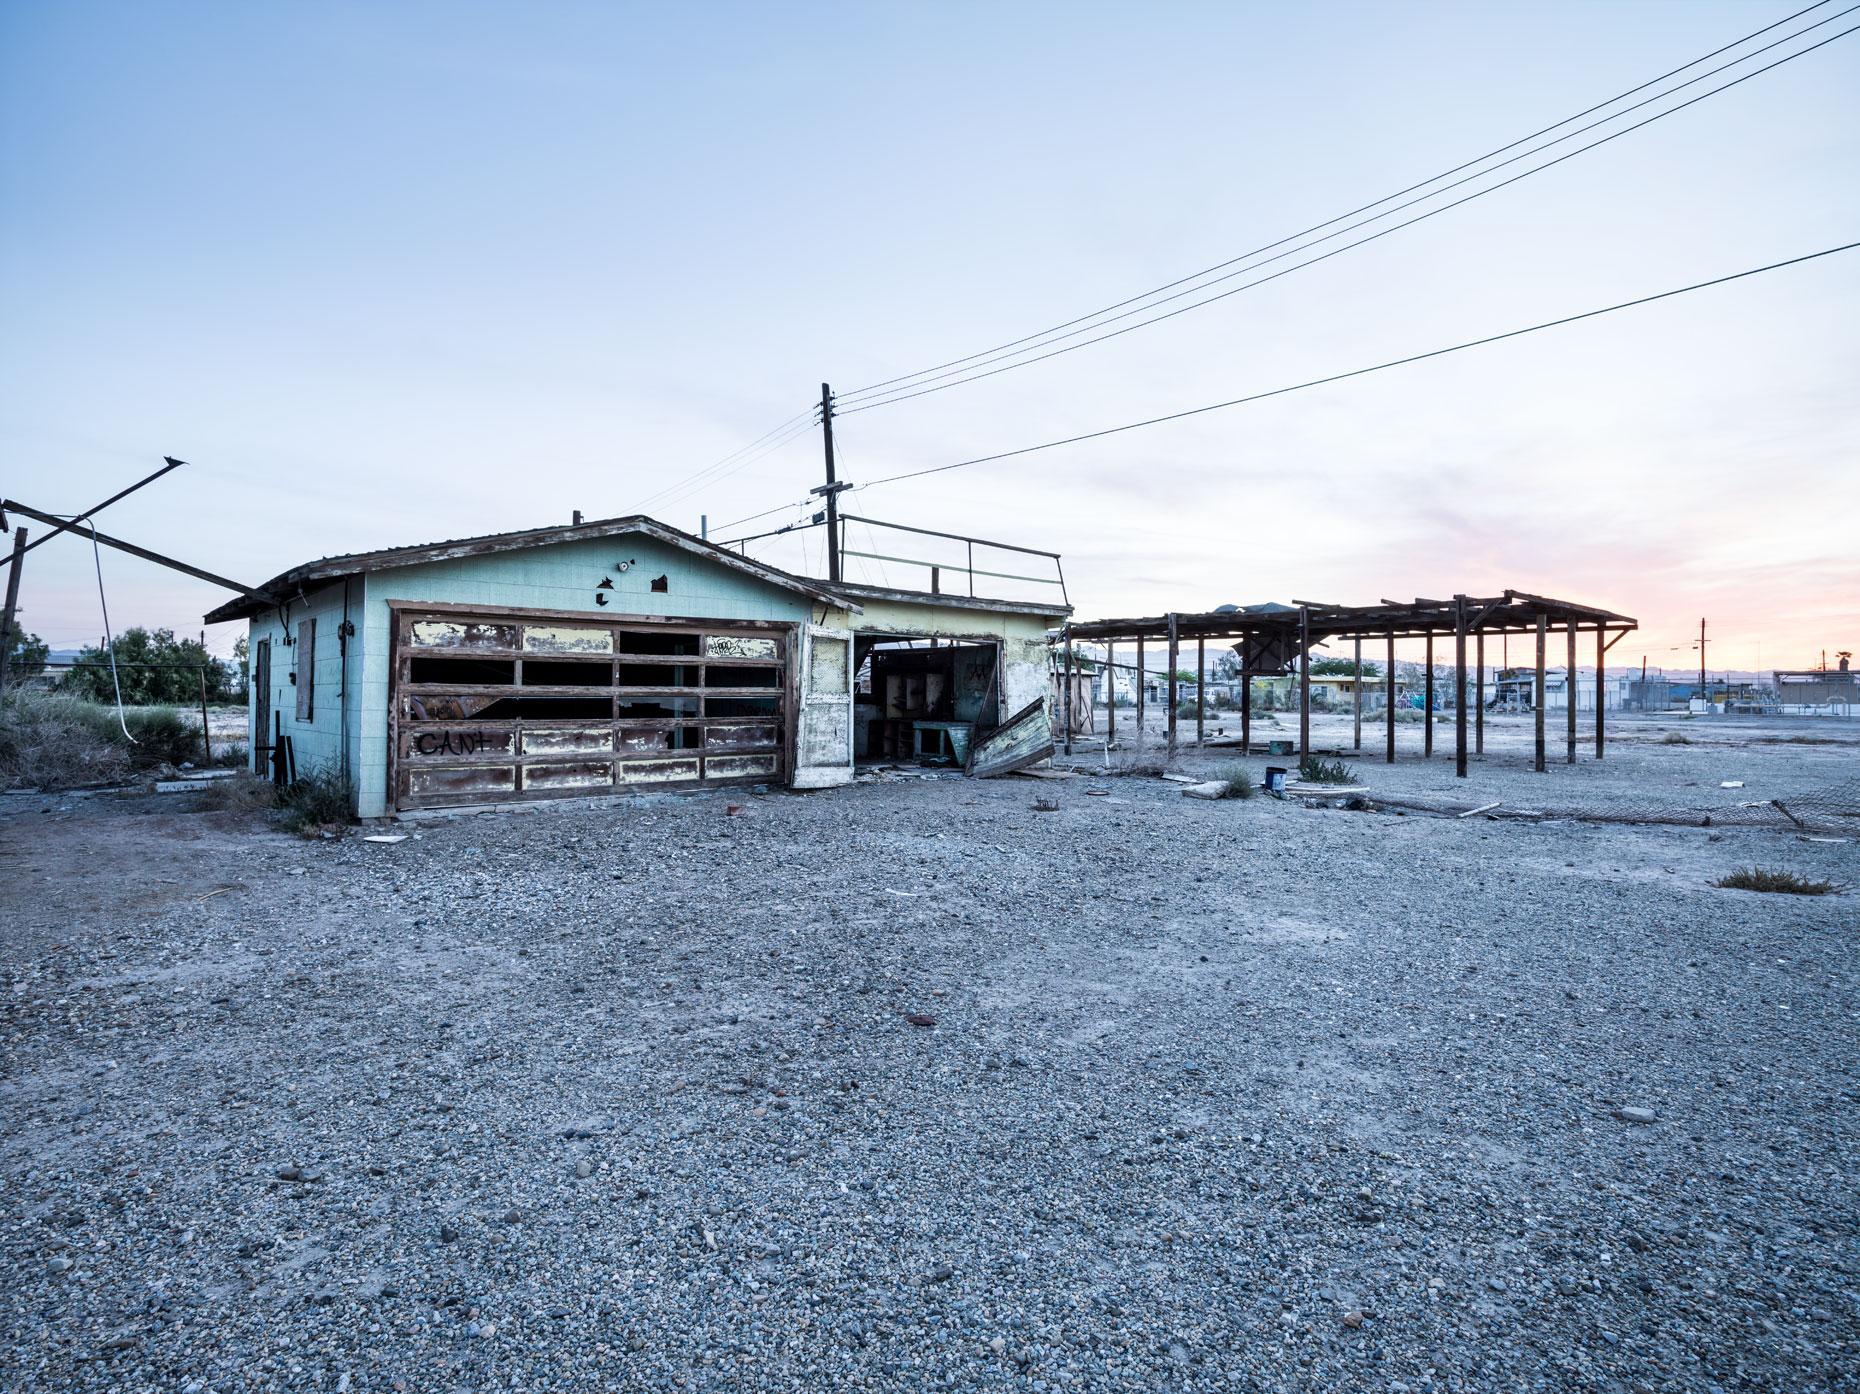 Bombay Beach decaying shed and house in the ghost town